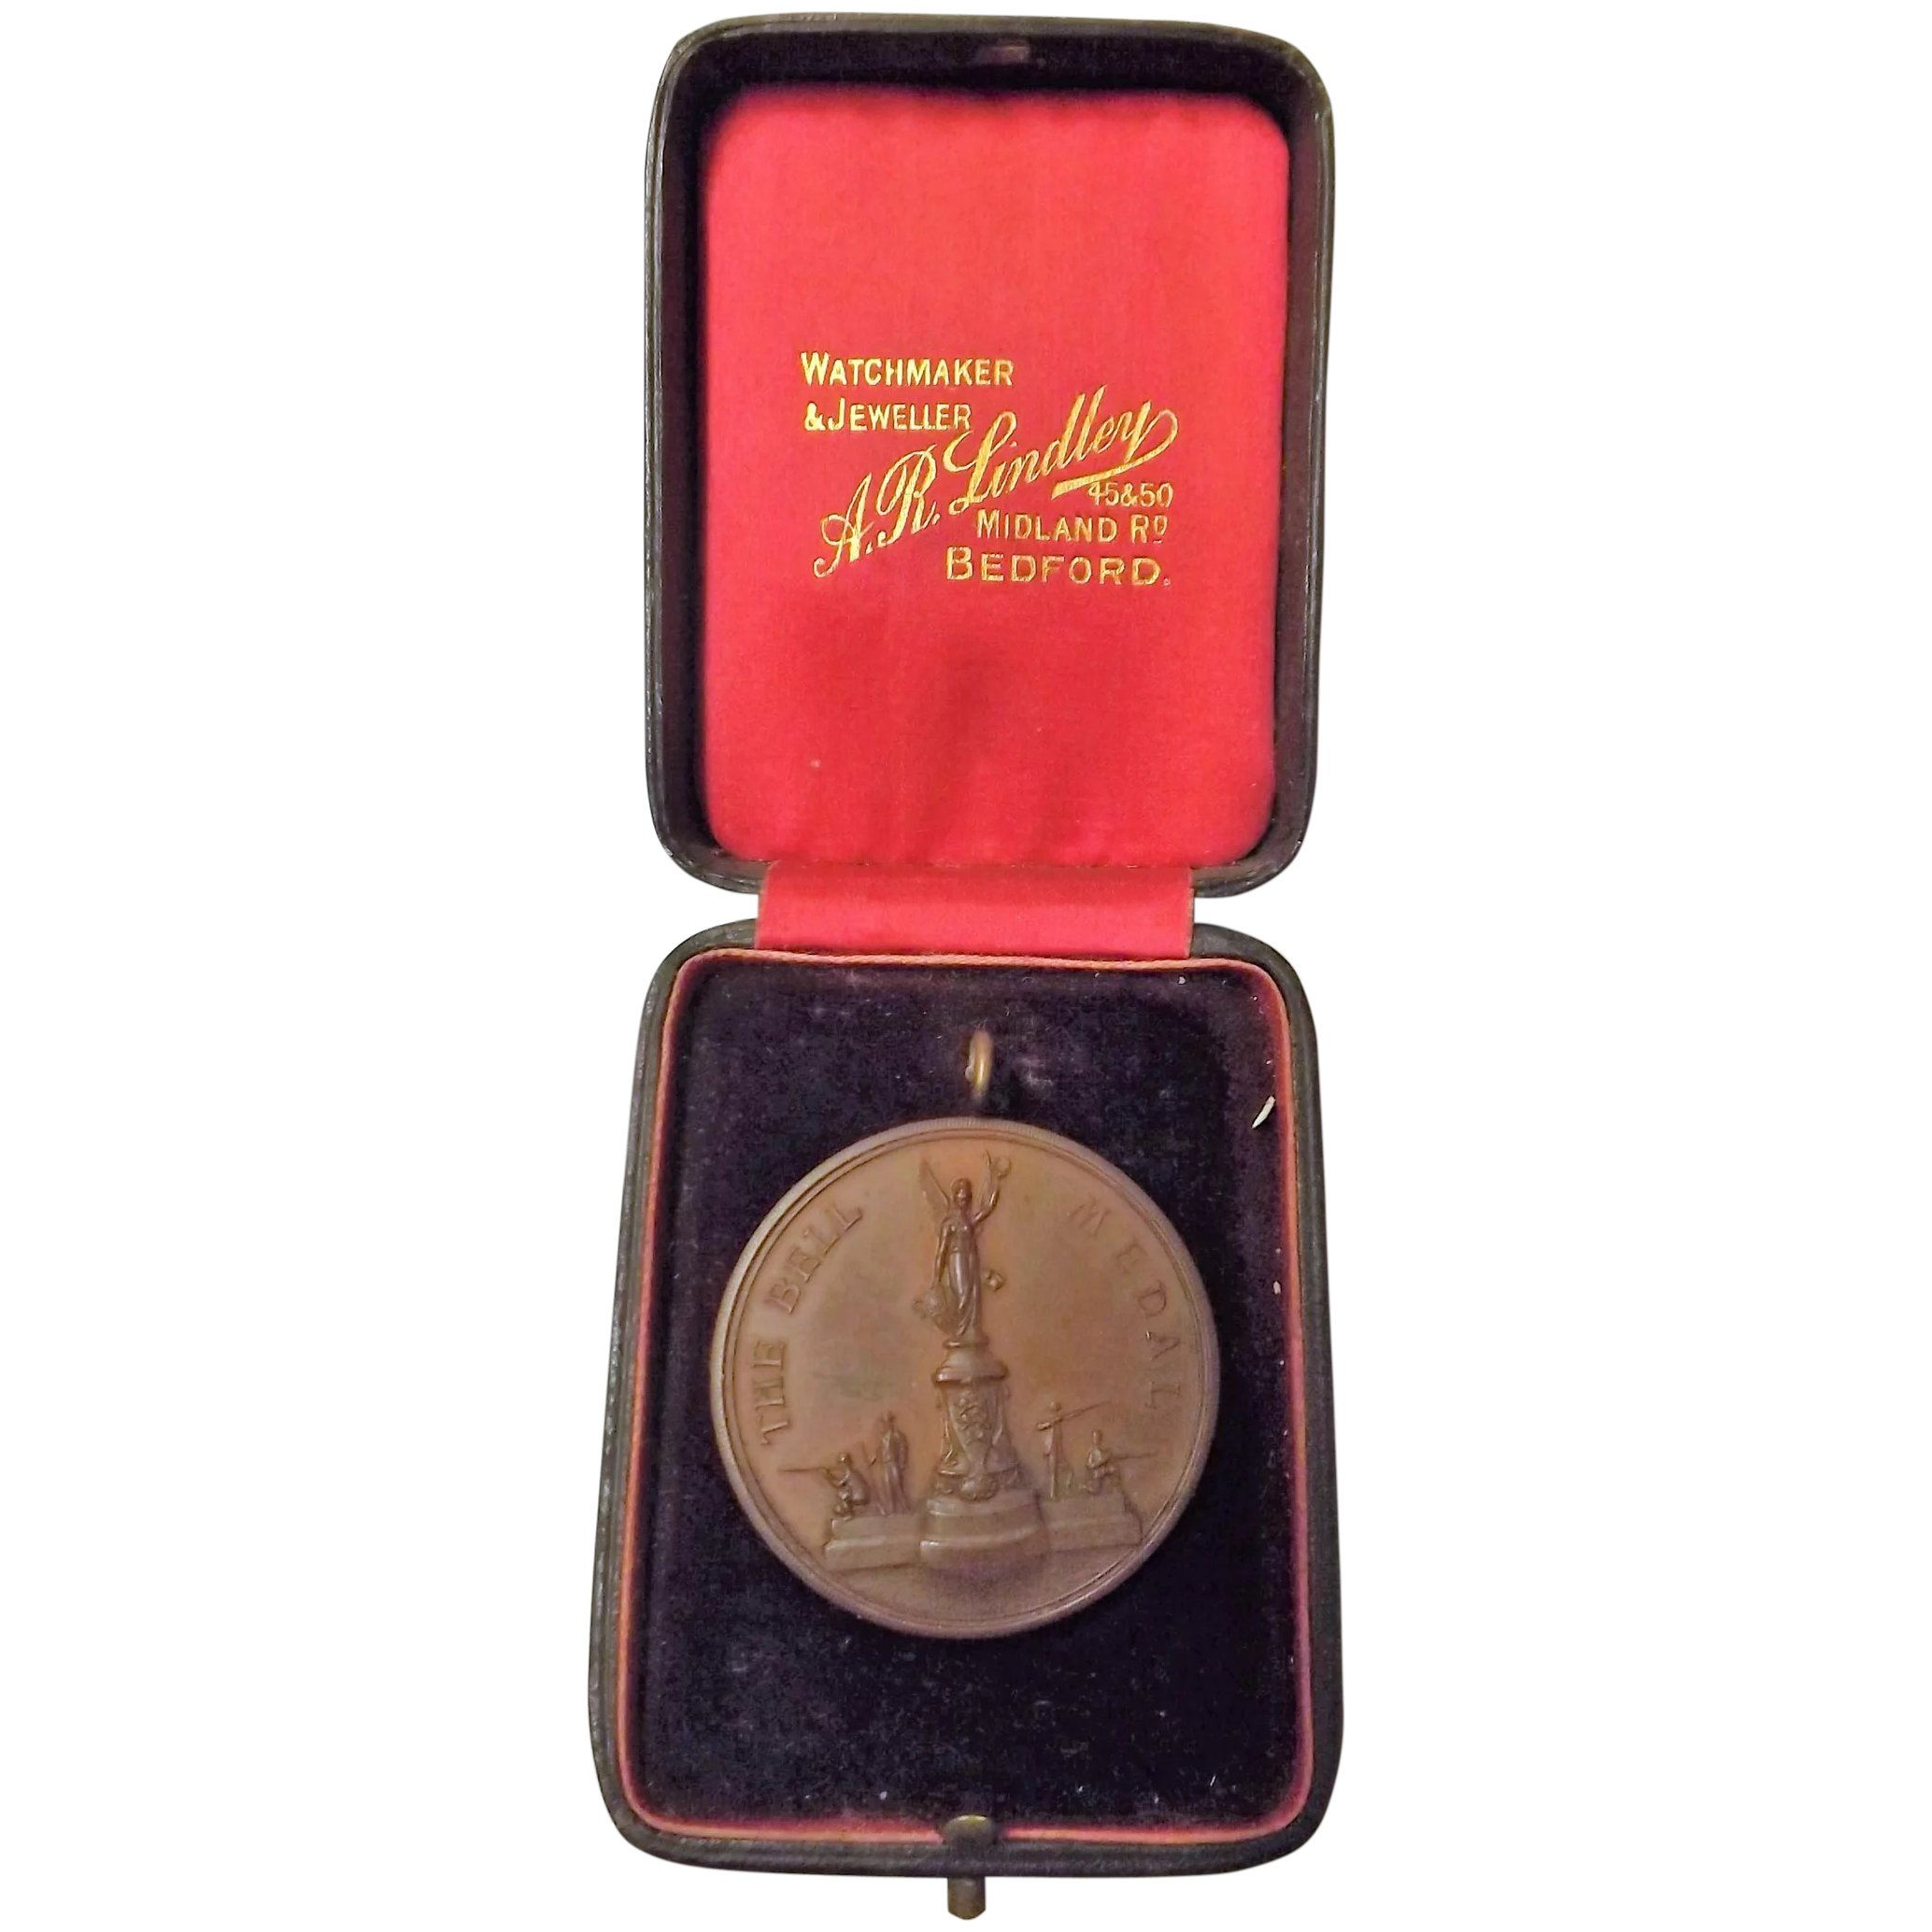 The Society of Miniature Rifle Clubs Bronze